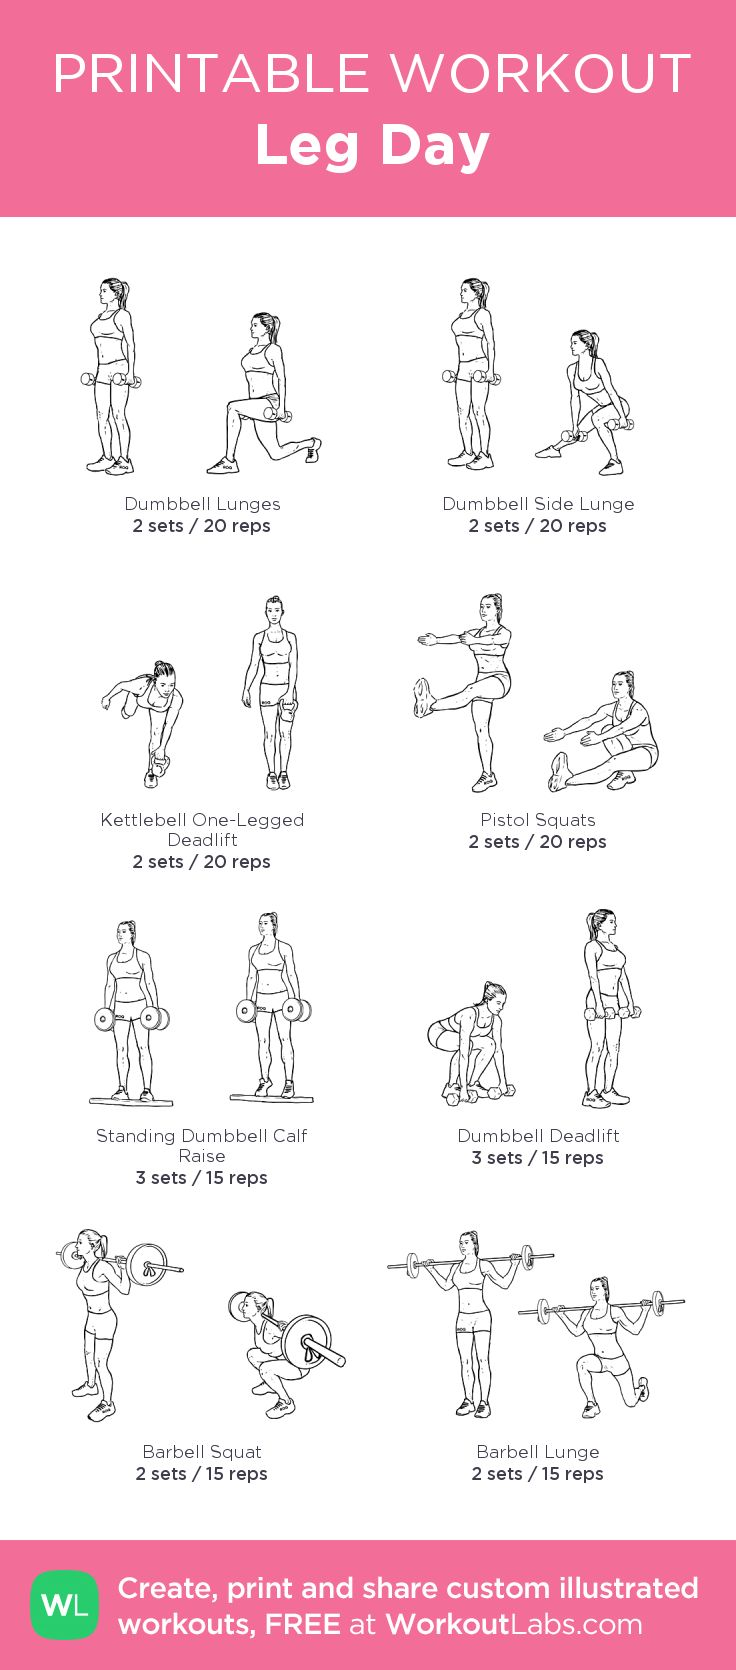 Leg Day: my custom printable workout by @WorkoutLabs pair with chest and back day